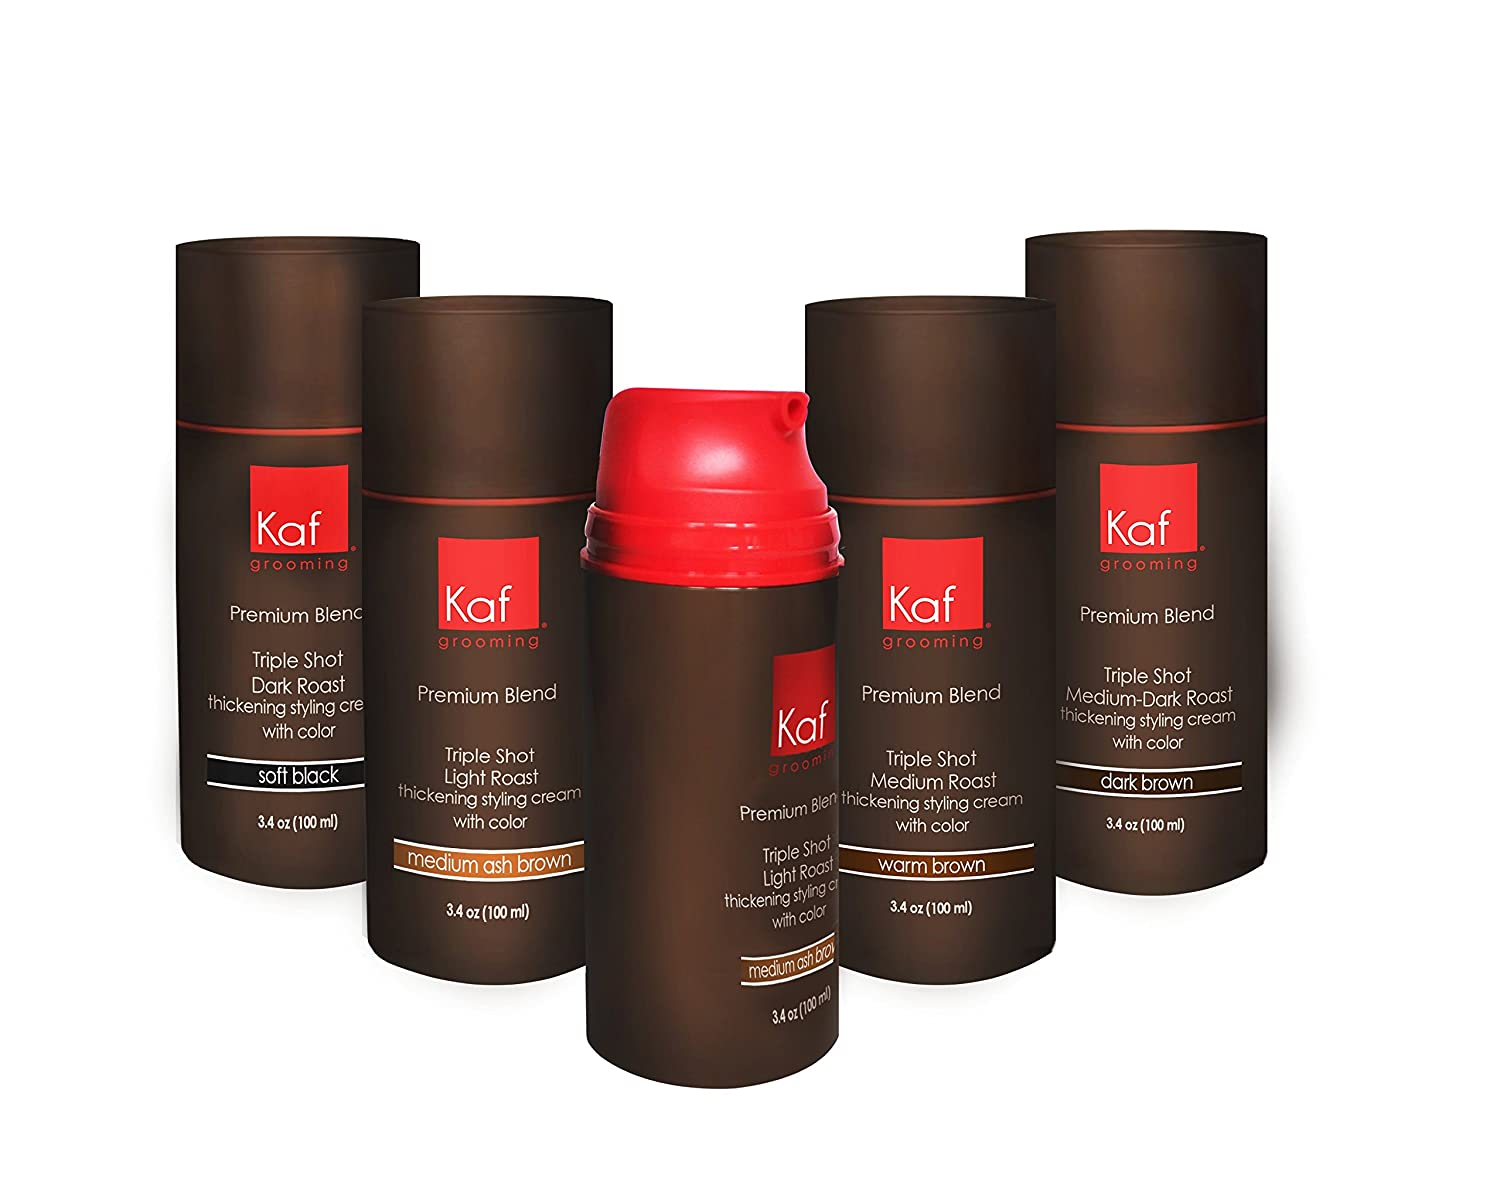 kaf grooming men's hair cream with color